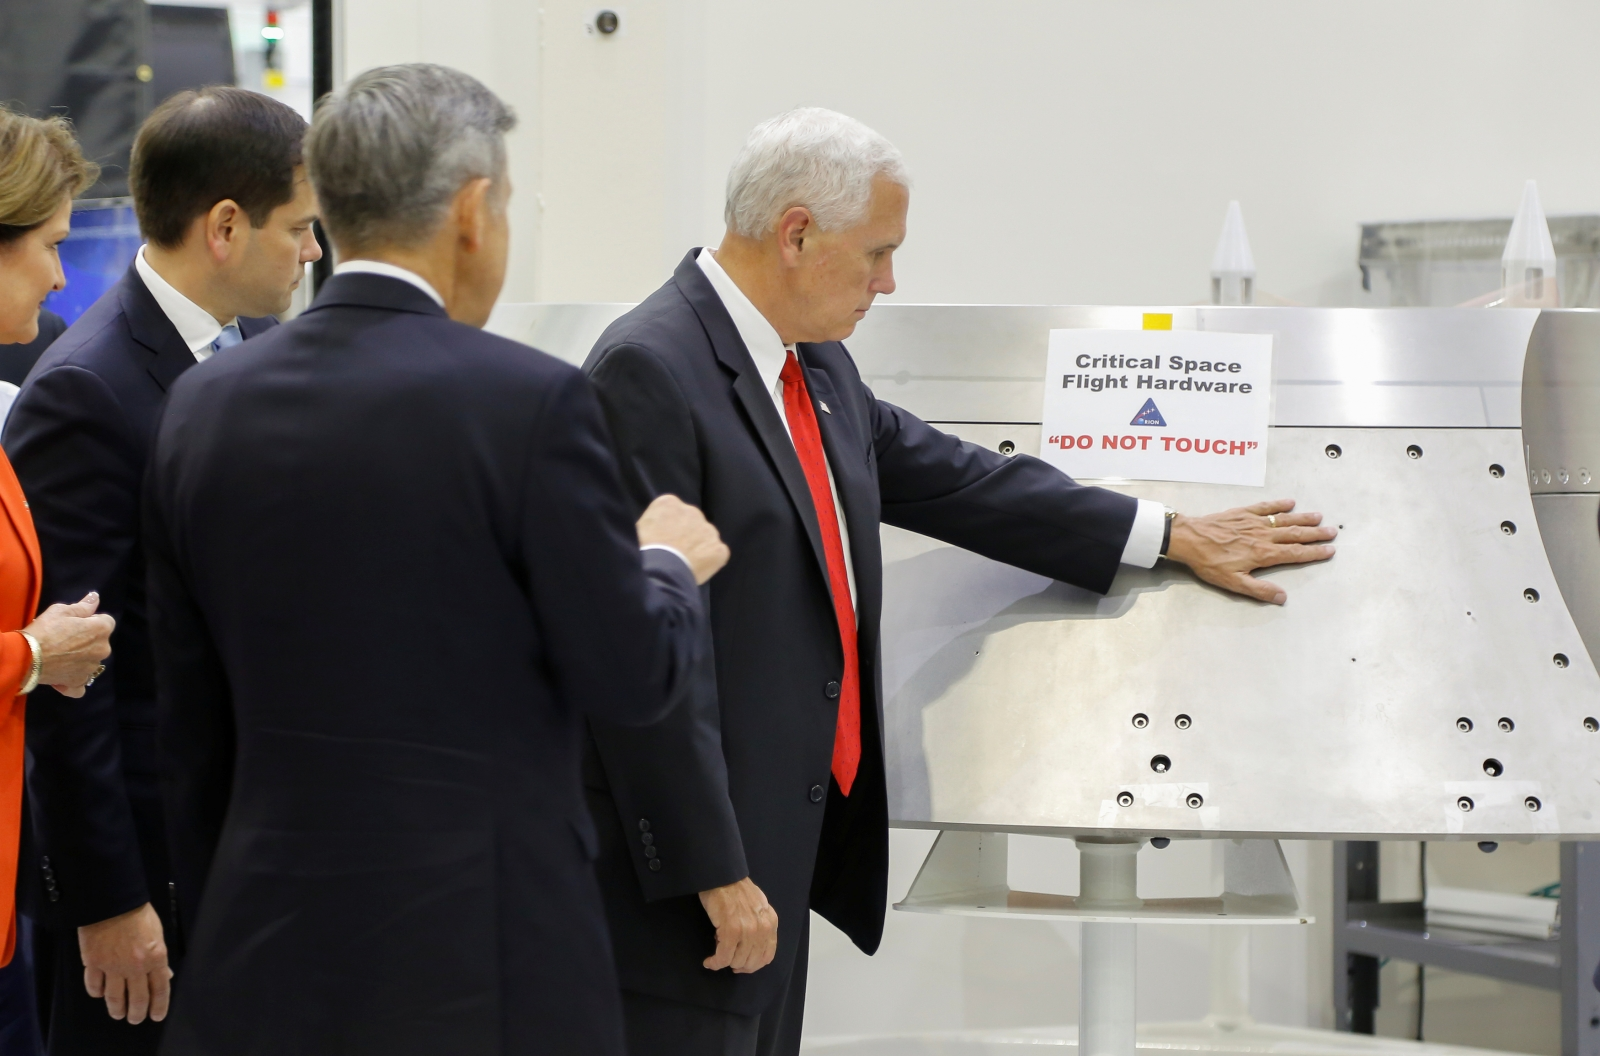 Mike Pence visited Nasa and touched the thing you mustn't ...